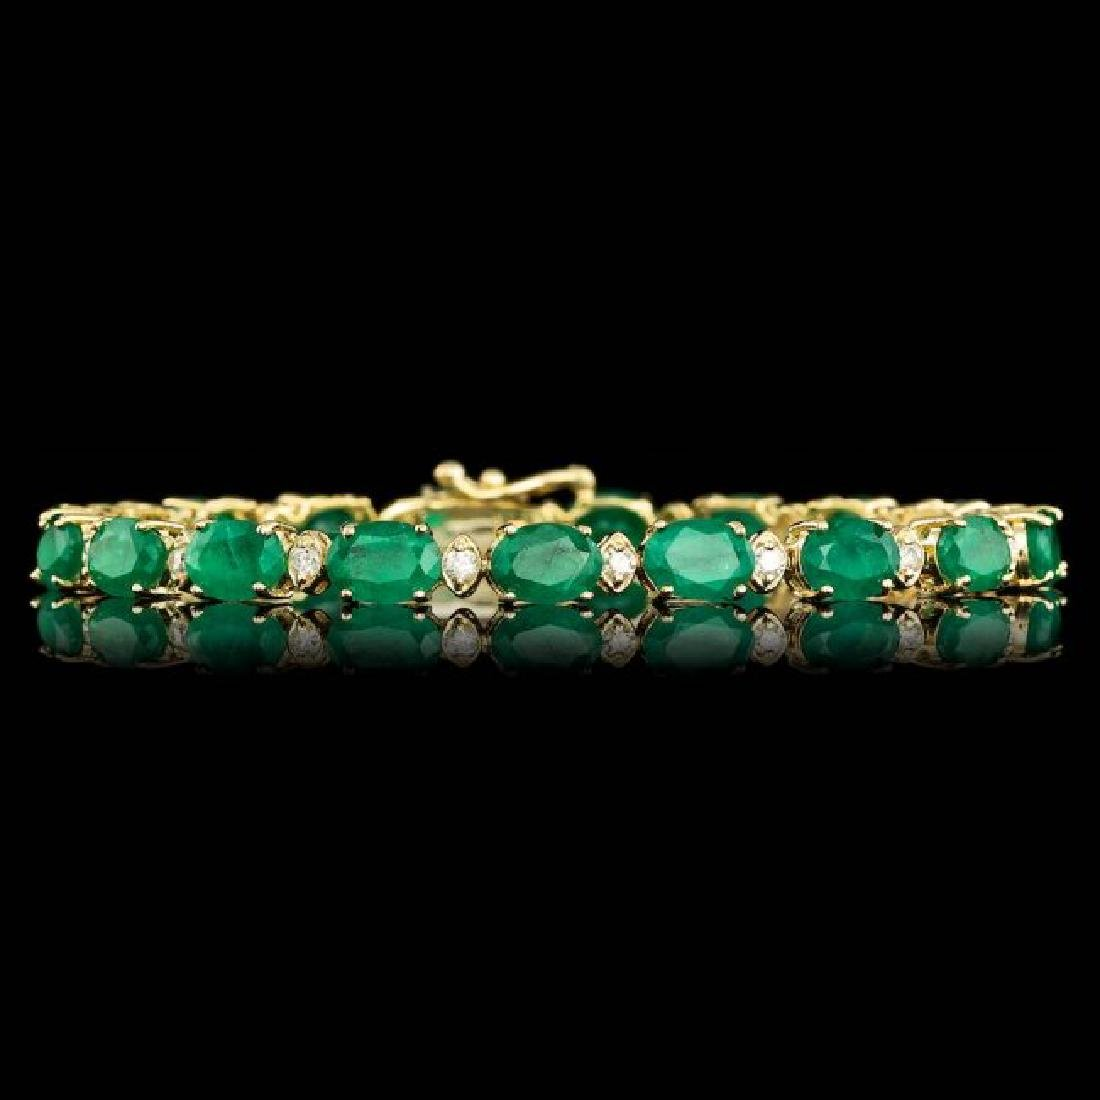 14k Gold 14.00ct Emerald 1.00ct Diamond Bracelet - 3